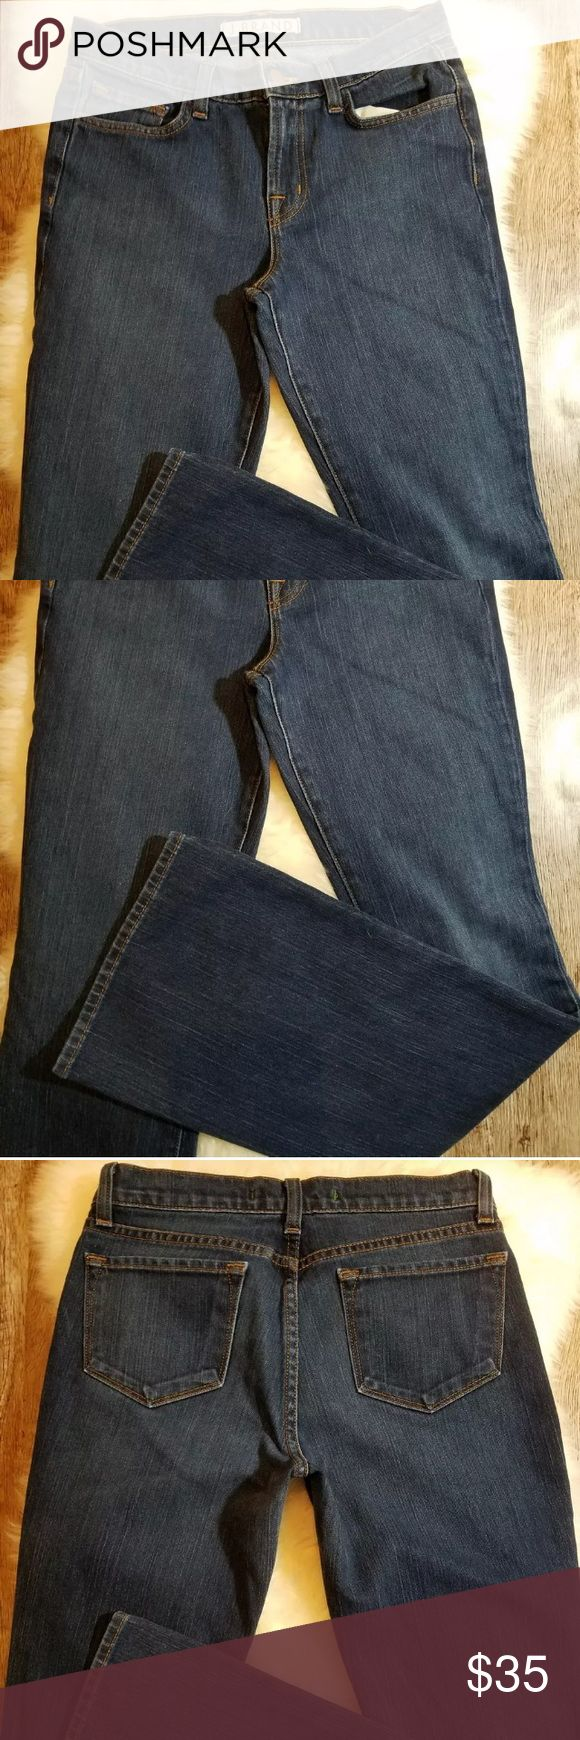 """J. Brand Dark Wash Bootcut Jeans Size 26 A-B6 J. Brand Womens Jeans Low Rise Dark  Wash Boot Leg Size 26 32"""" Inseam A-B6 Classic Style! This listing features popular J. Brand jeans with classic 5 pocket look, dark wash, low rise, Bootcut. Excellent Pre-Owned condition. INSEAM: 32"""" WAIST: 26"""" RISE: 8.5"""" ALL ITEMS FROM SMOKE FREE HOME Thanks for looking!  #A-B-6 J Brand Jeans Boot Cut"""